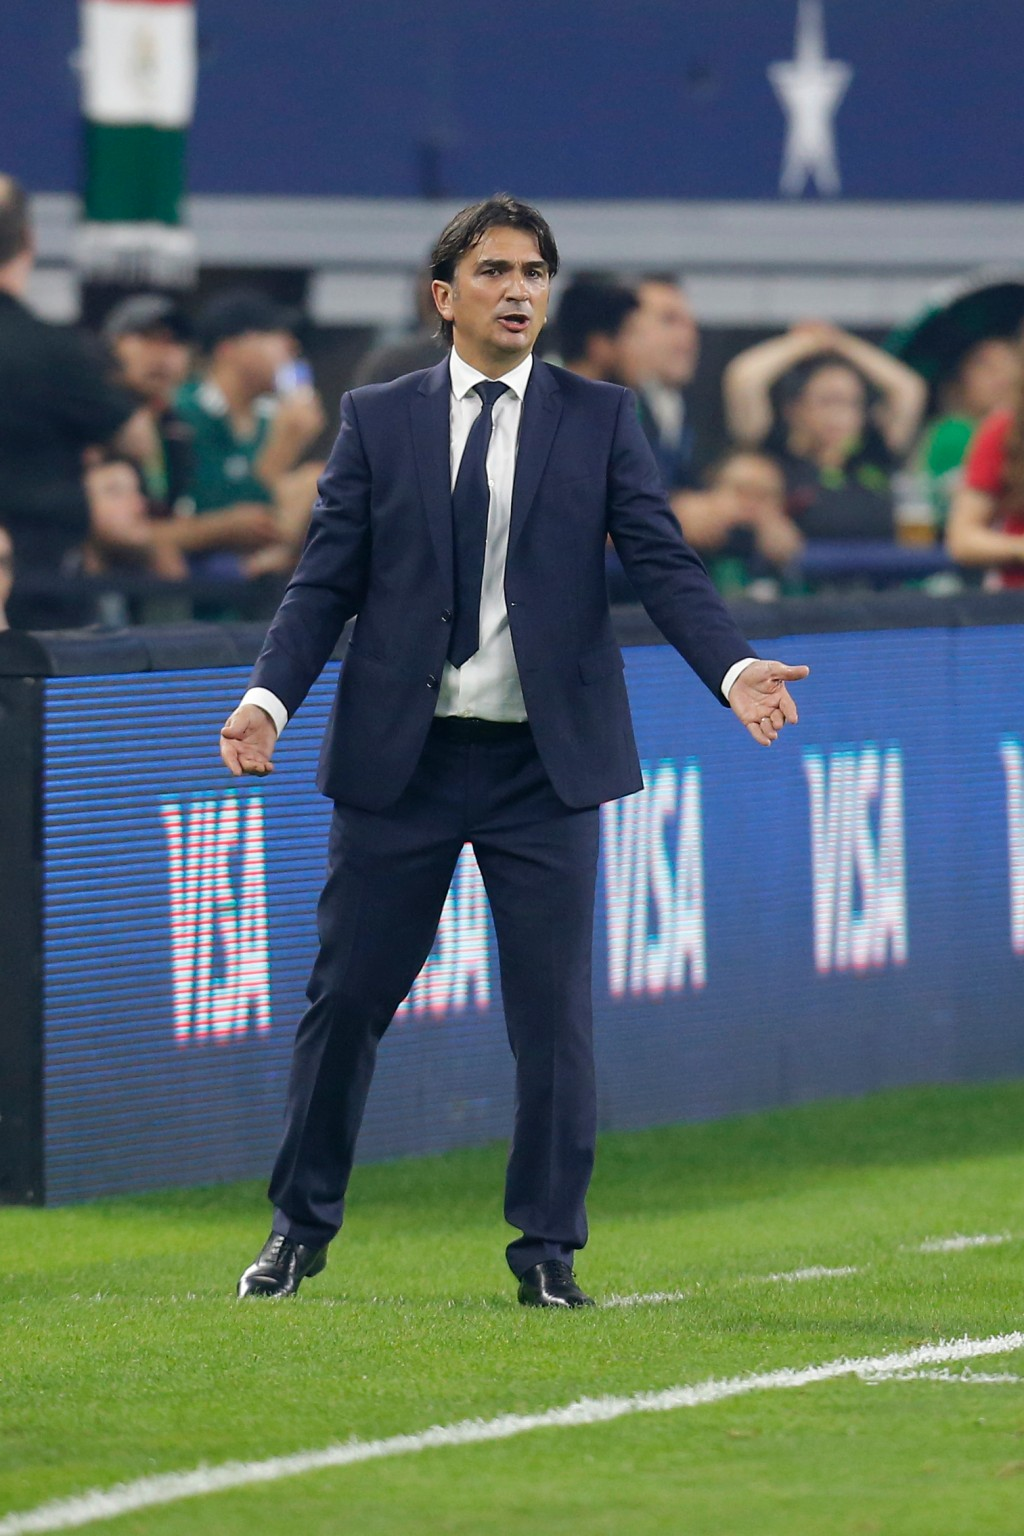 FILE - In this photo taken on Tuesday, March 27, 2018, Croatia head coach Zlatko Dalic watches play during the second half of an international friendl...